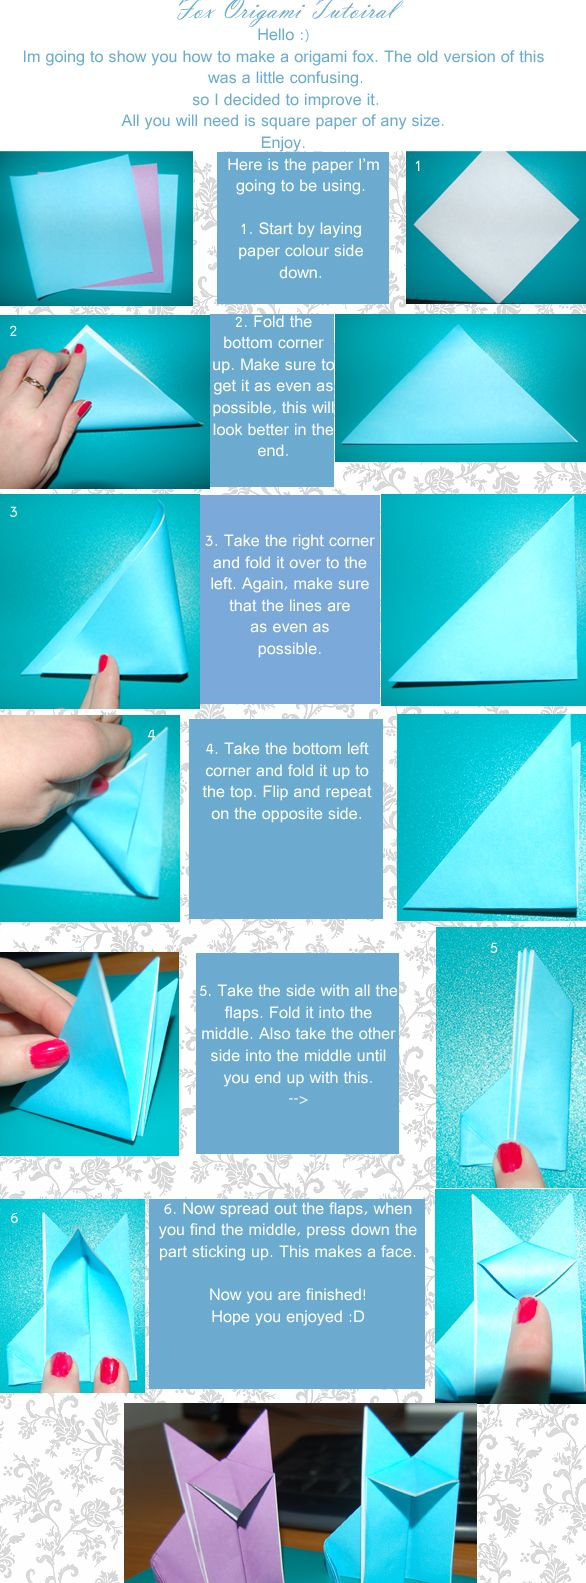 Origami Fox Tutorial By Jalamie On Deviantart Newer Version Advanced Instructions Diagram